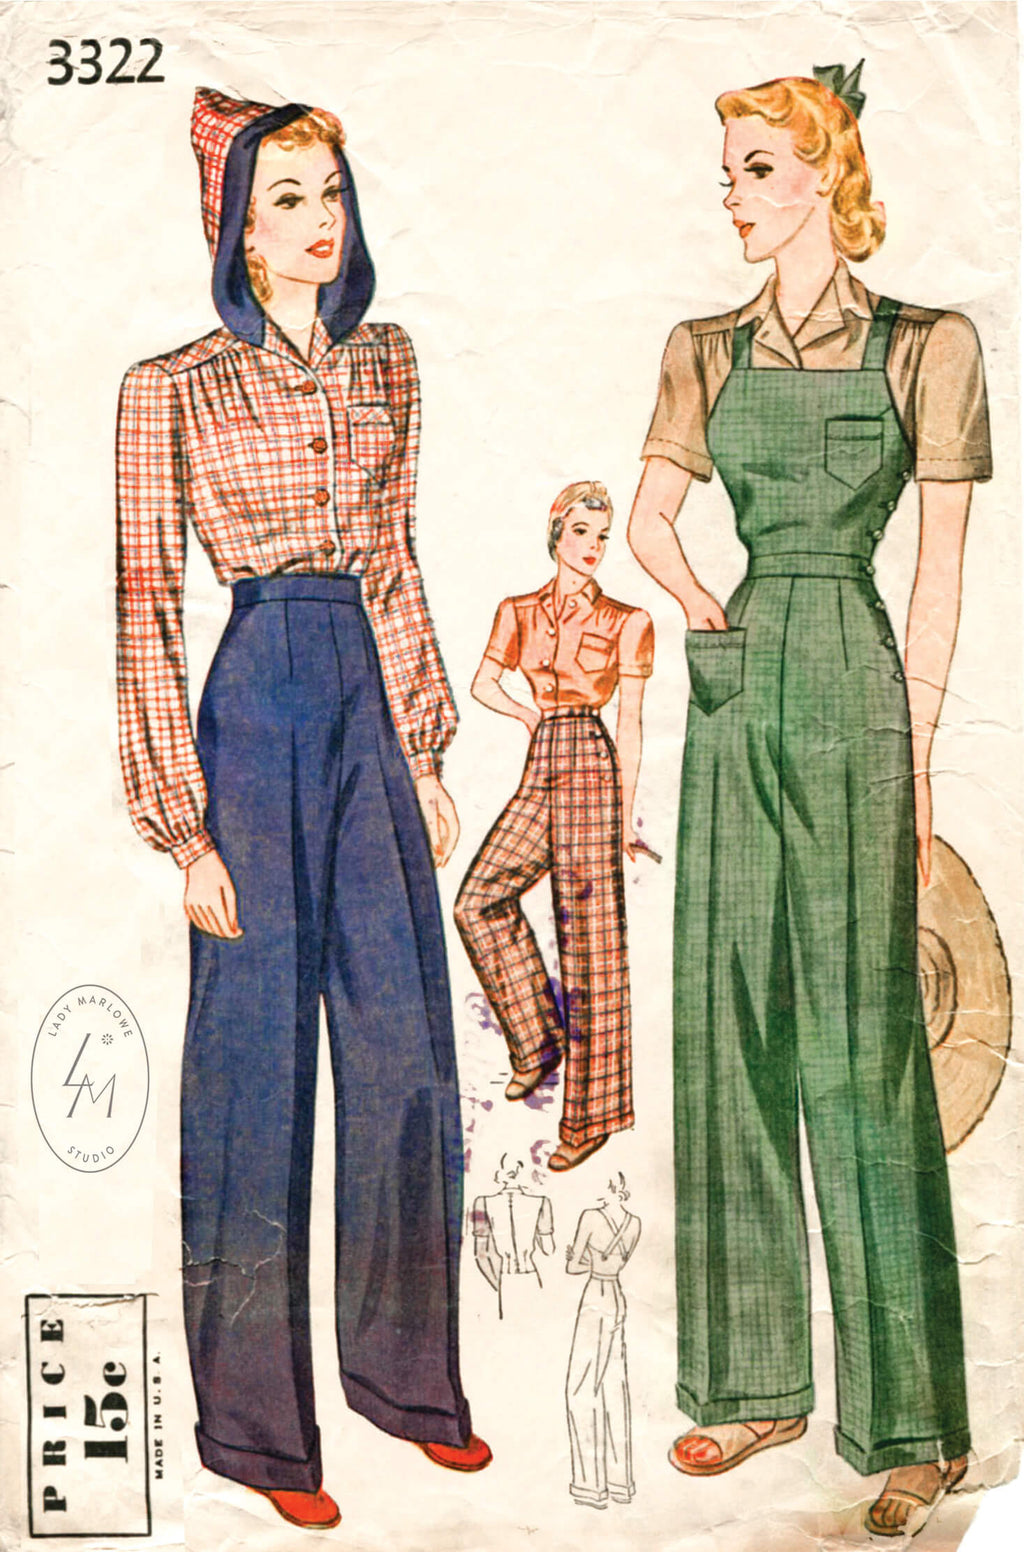 Simplicity 3322 1940s Rosie the Riveter overalls & blouse pattern